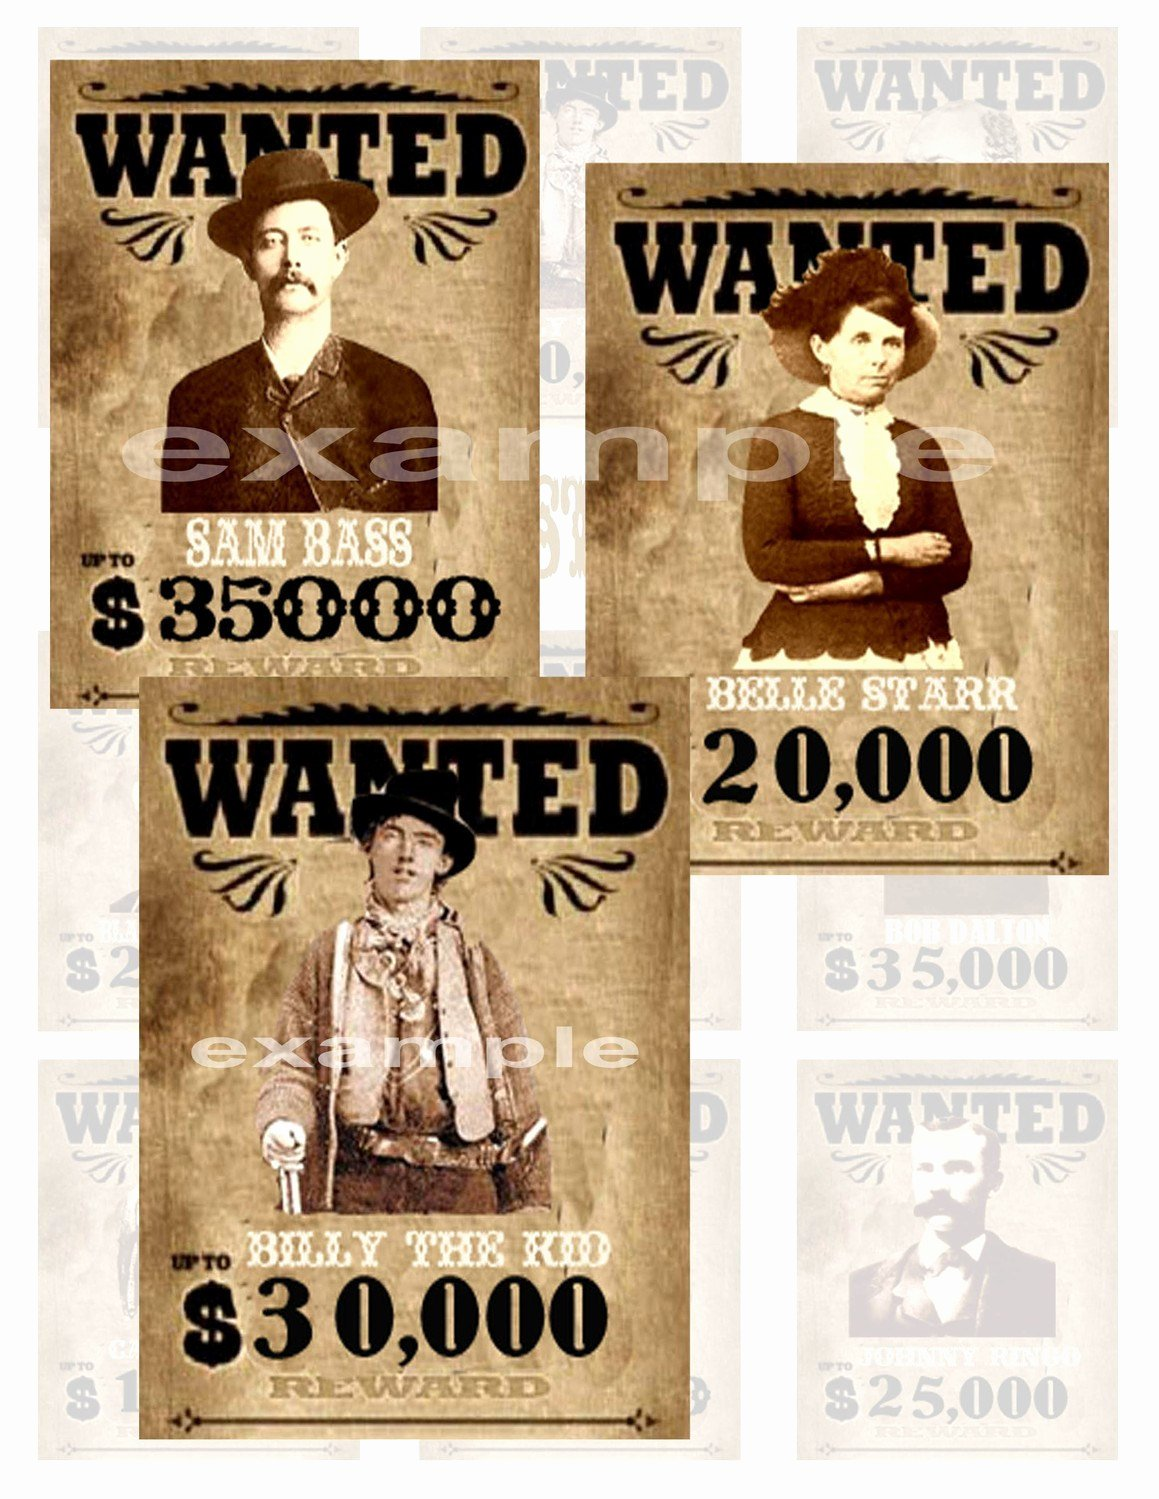 Wild West Wanted Posters Elegant Wild West Outlaws Wanted Posters Digital Collage Sheet